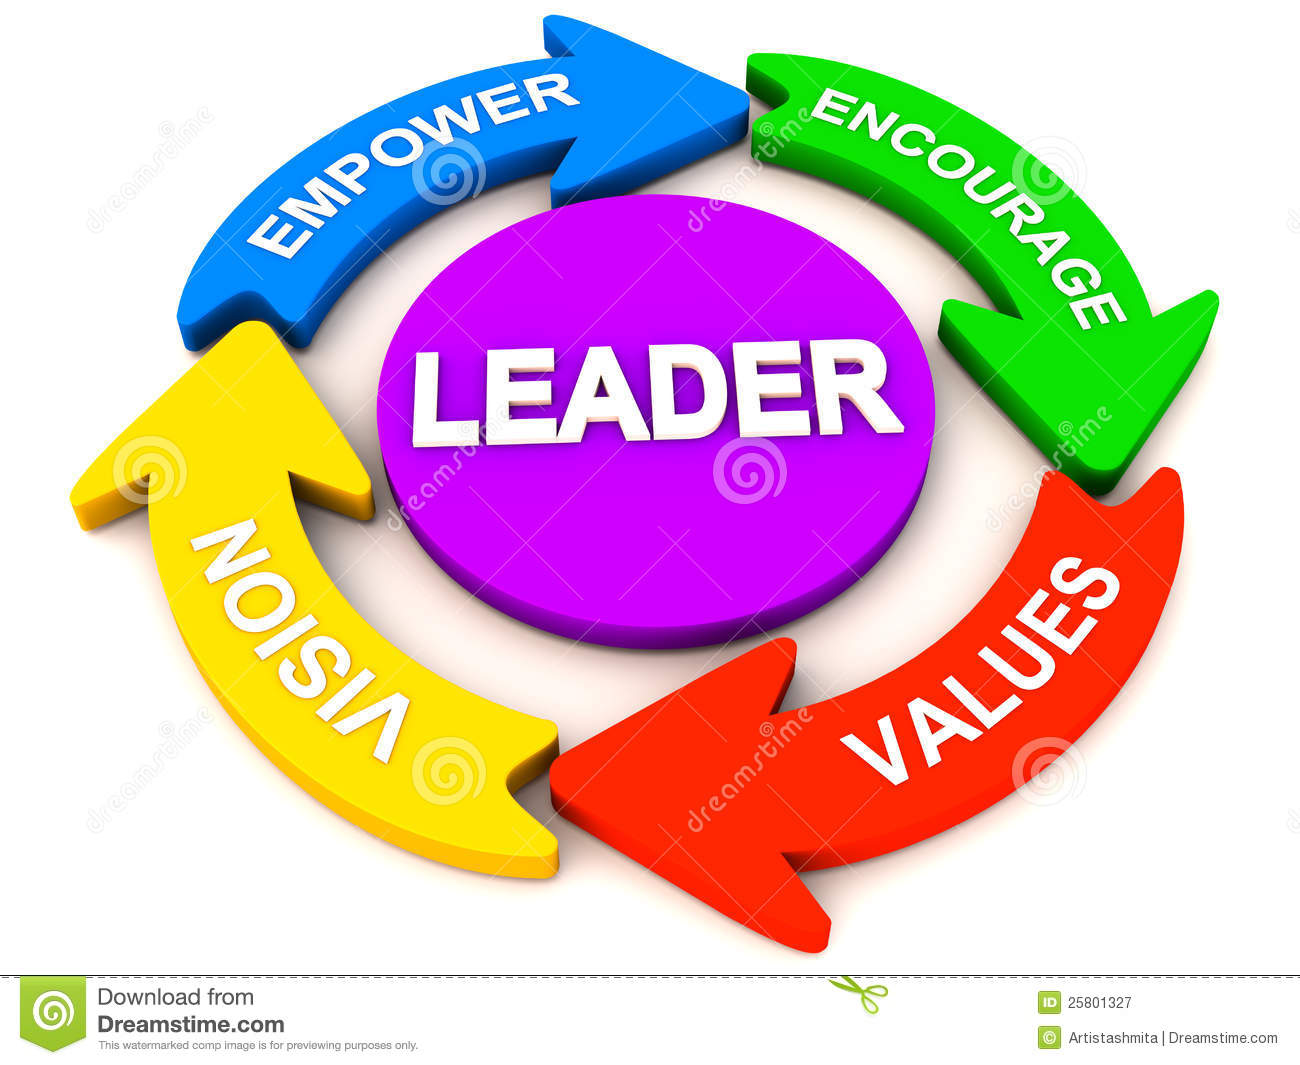 leadership clipart clipart panda free clipart images free clipart leadership and management Journey into Leadership Clip Art